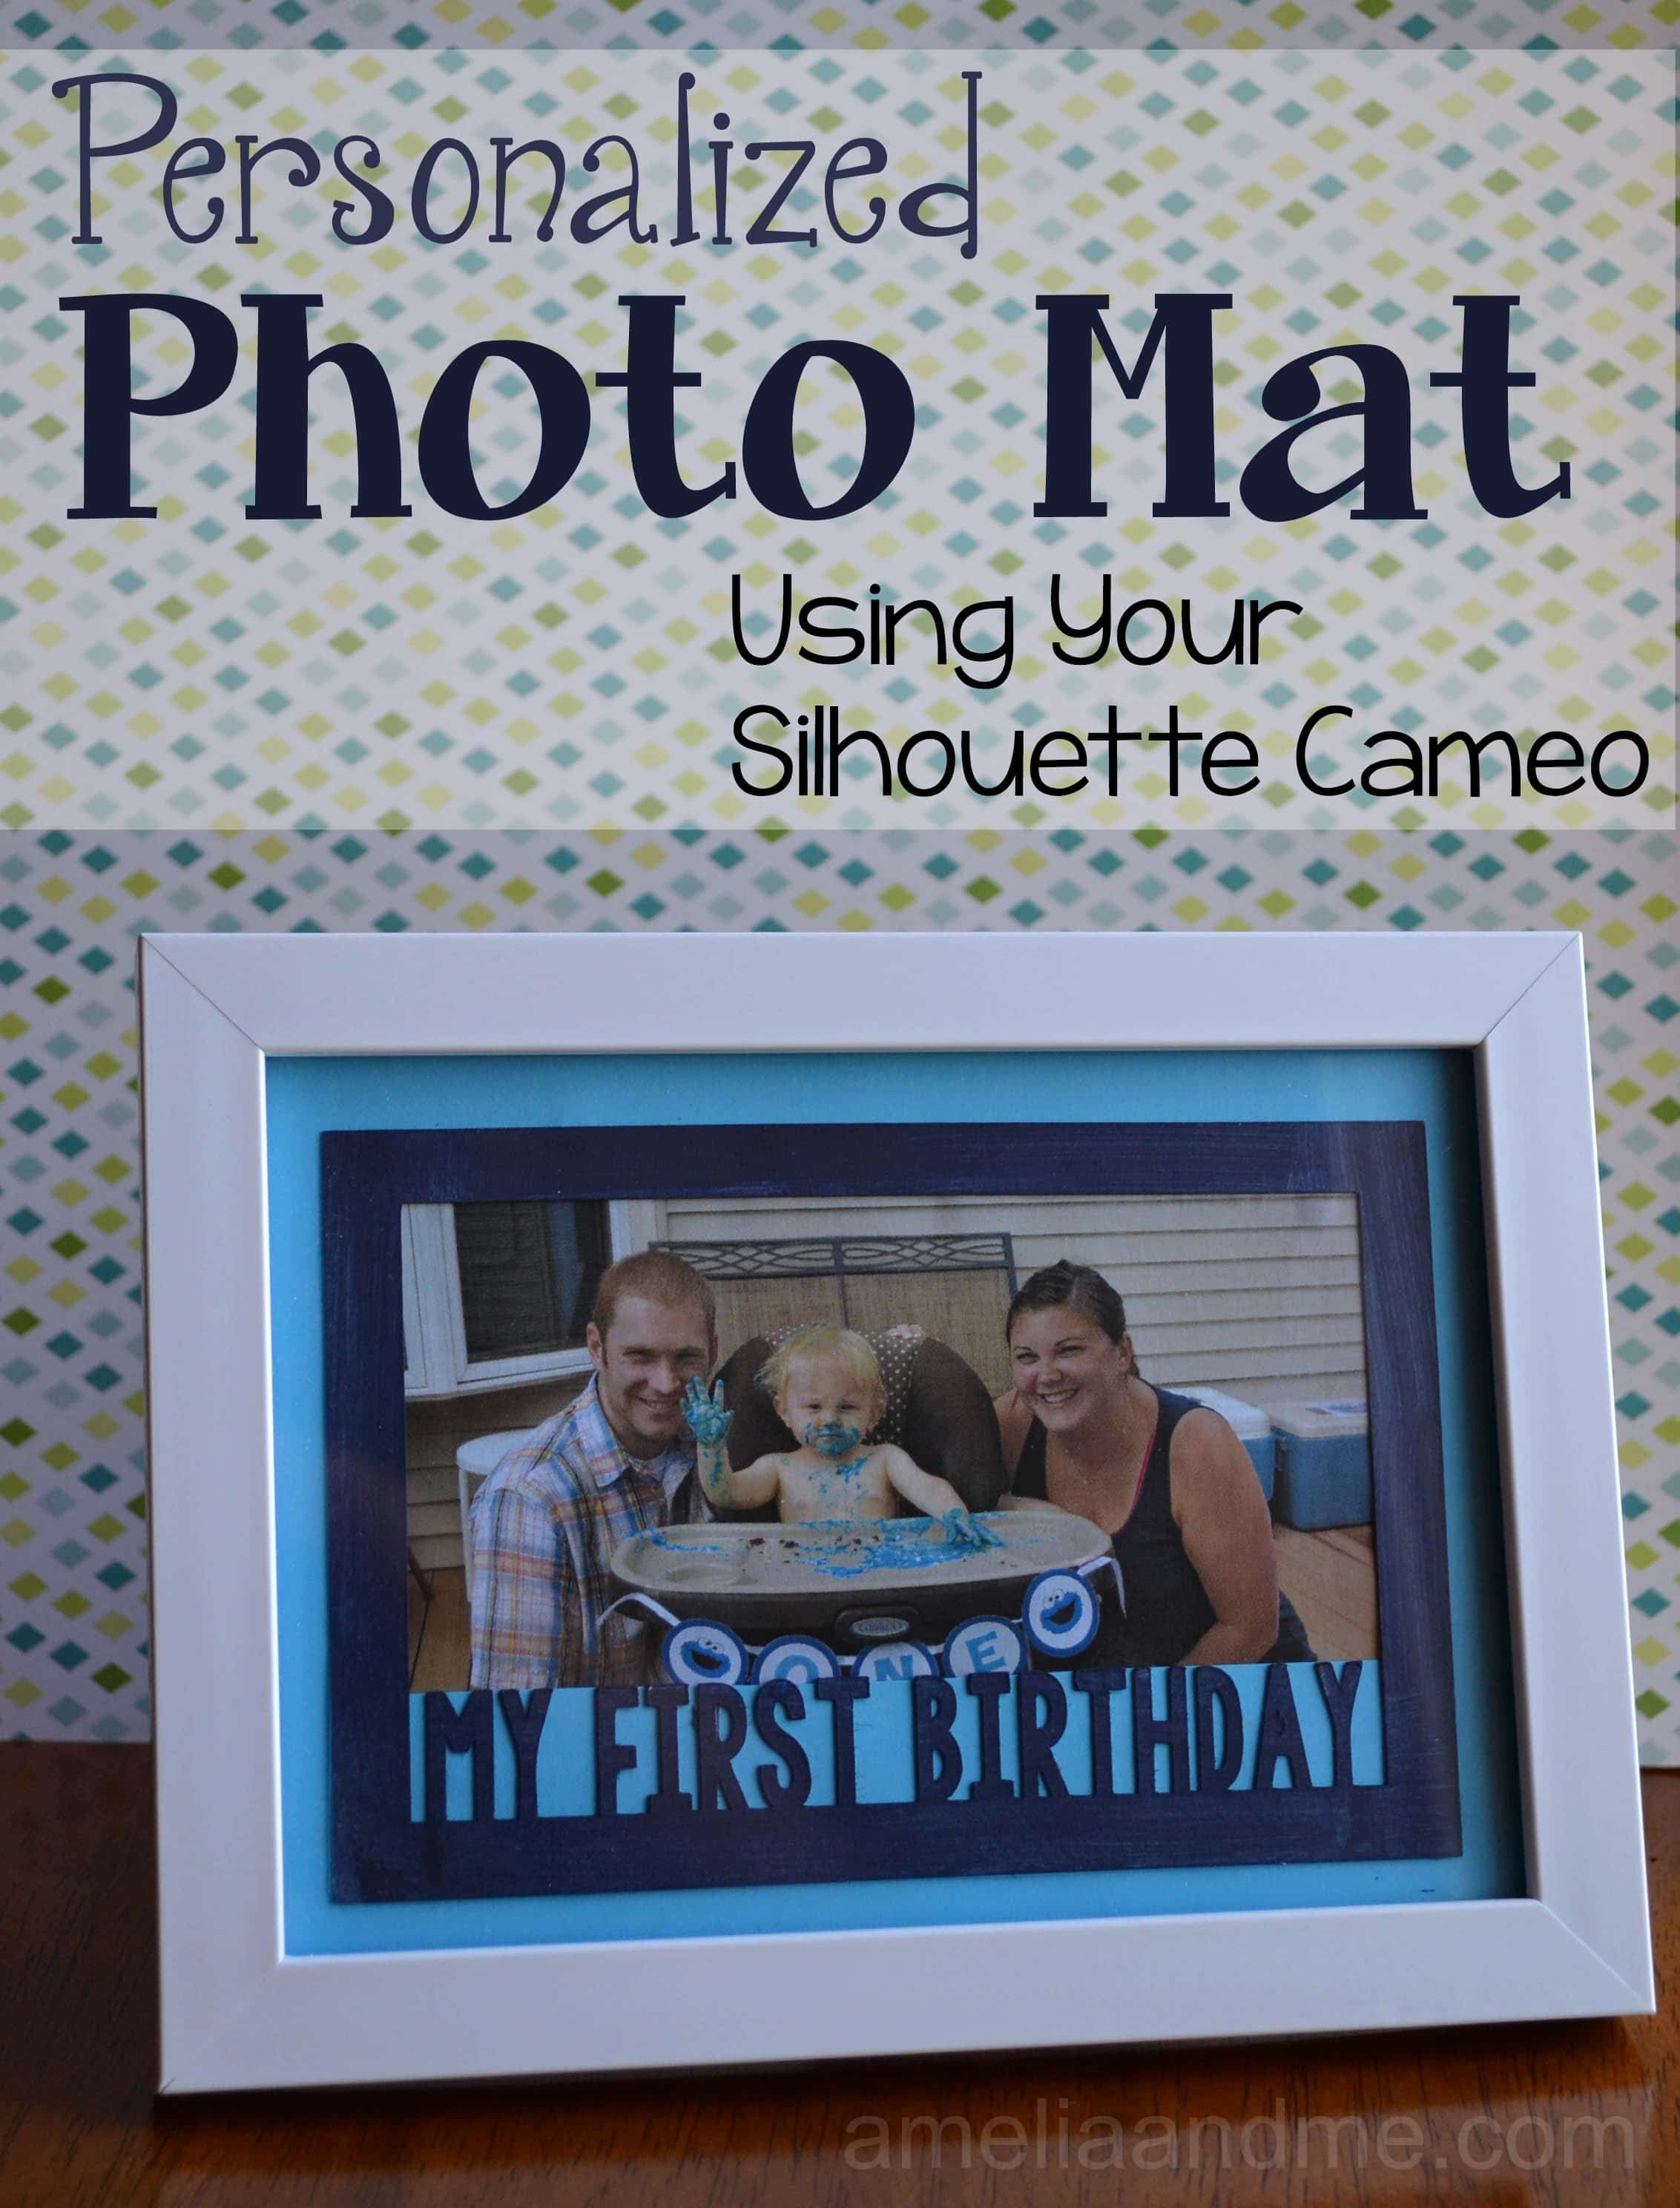 DIY Personalized Photo Mats